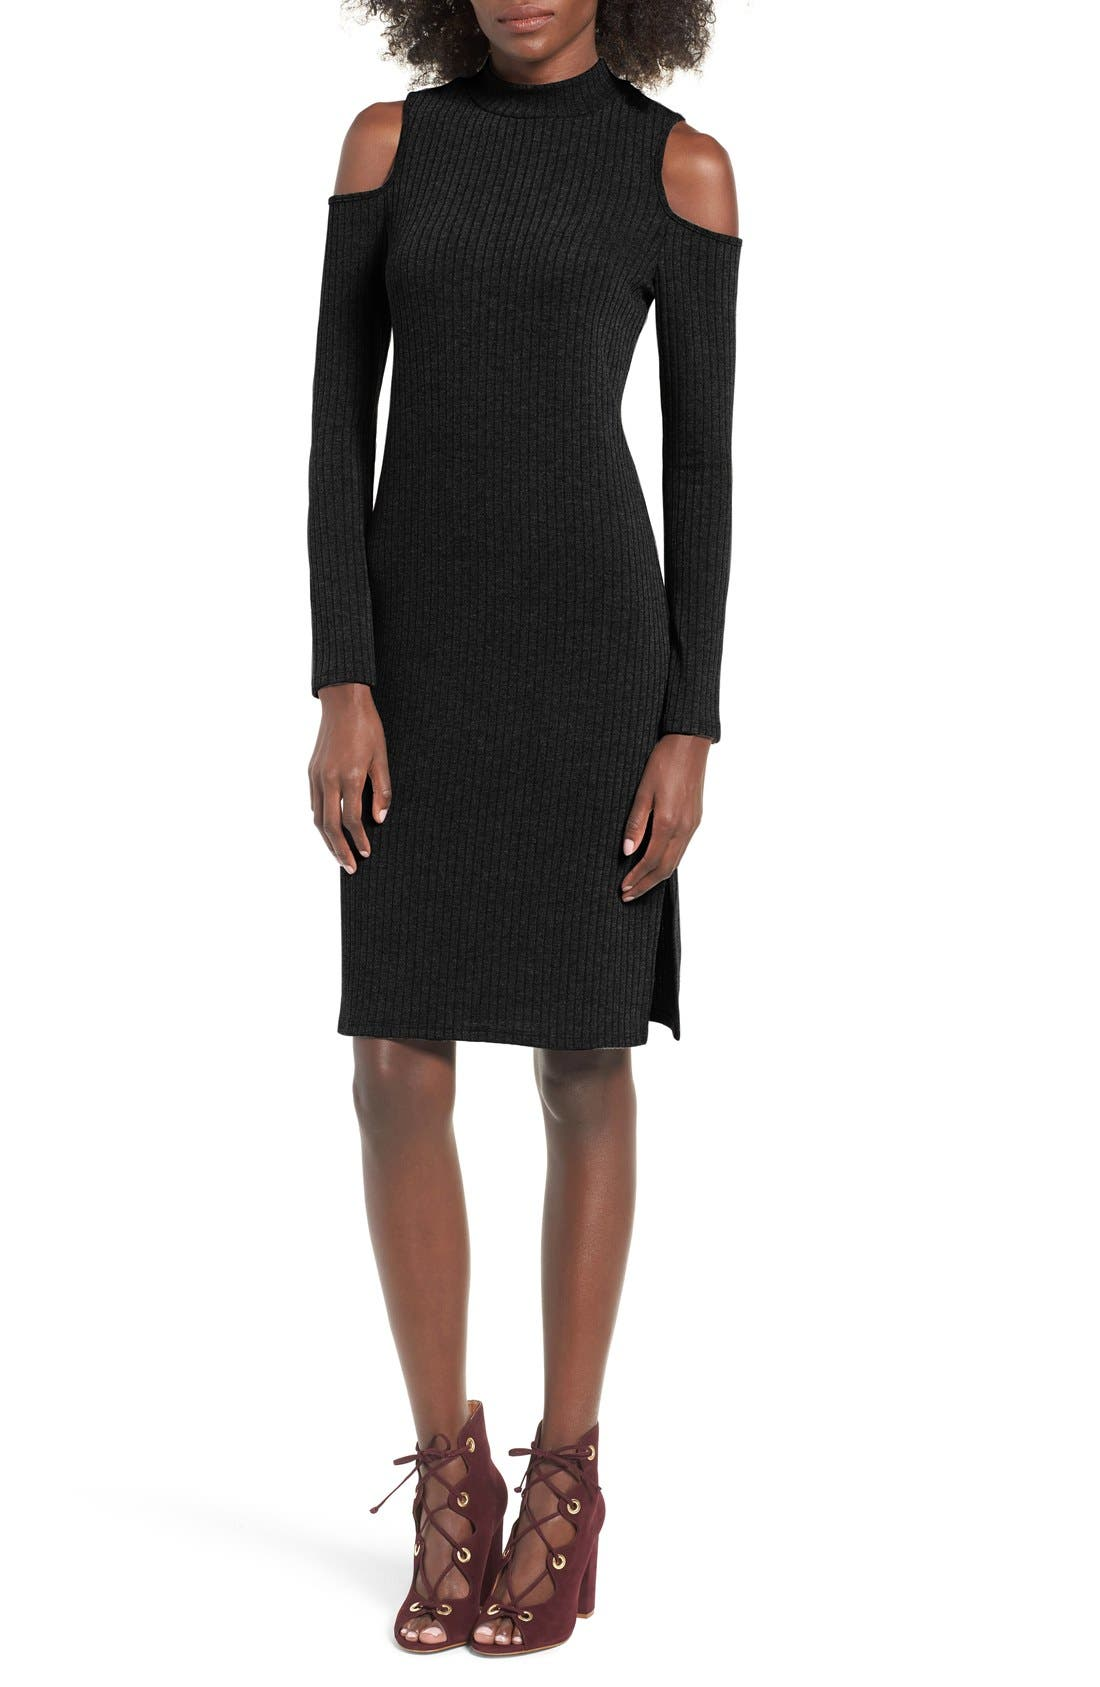 Alternate Image 1 Selected - One Clothing Cold Shoulder Midi Dress